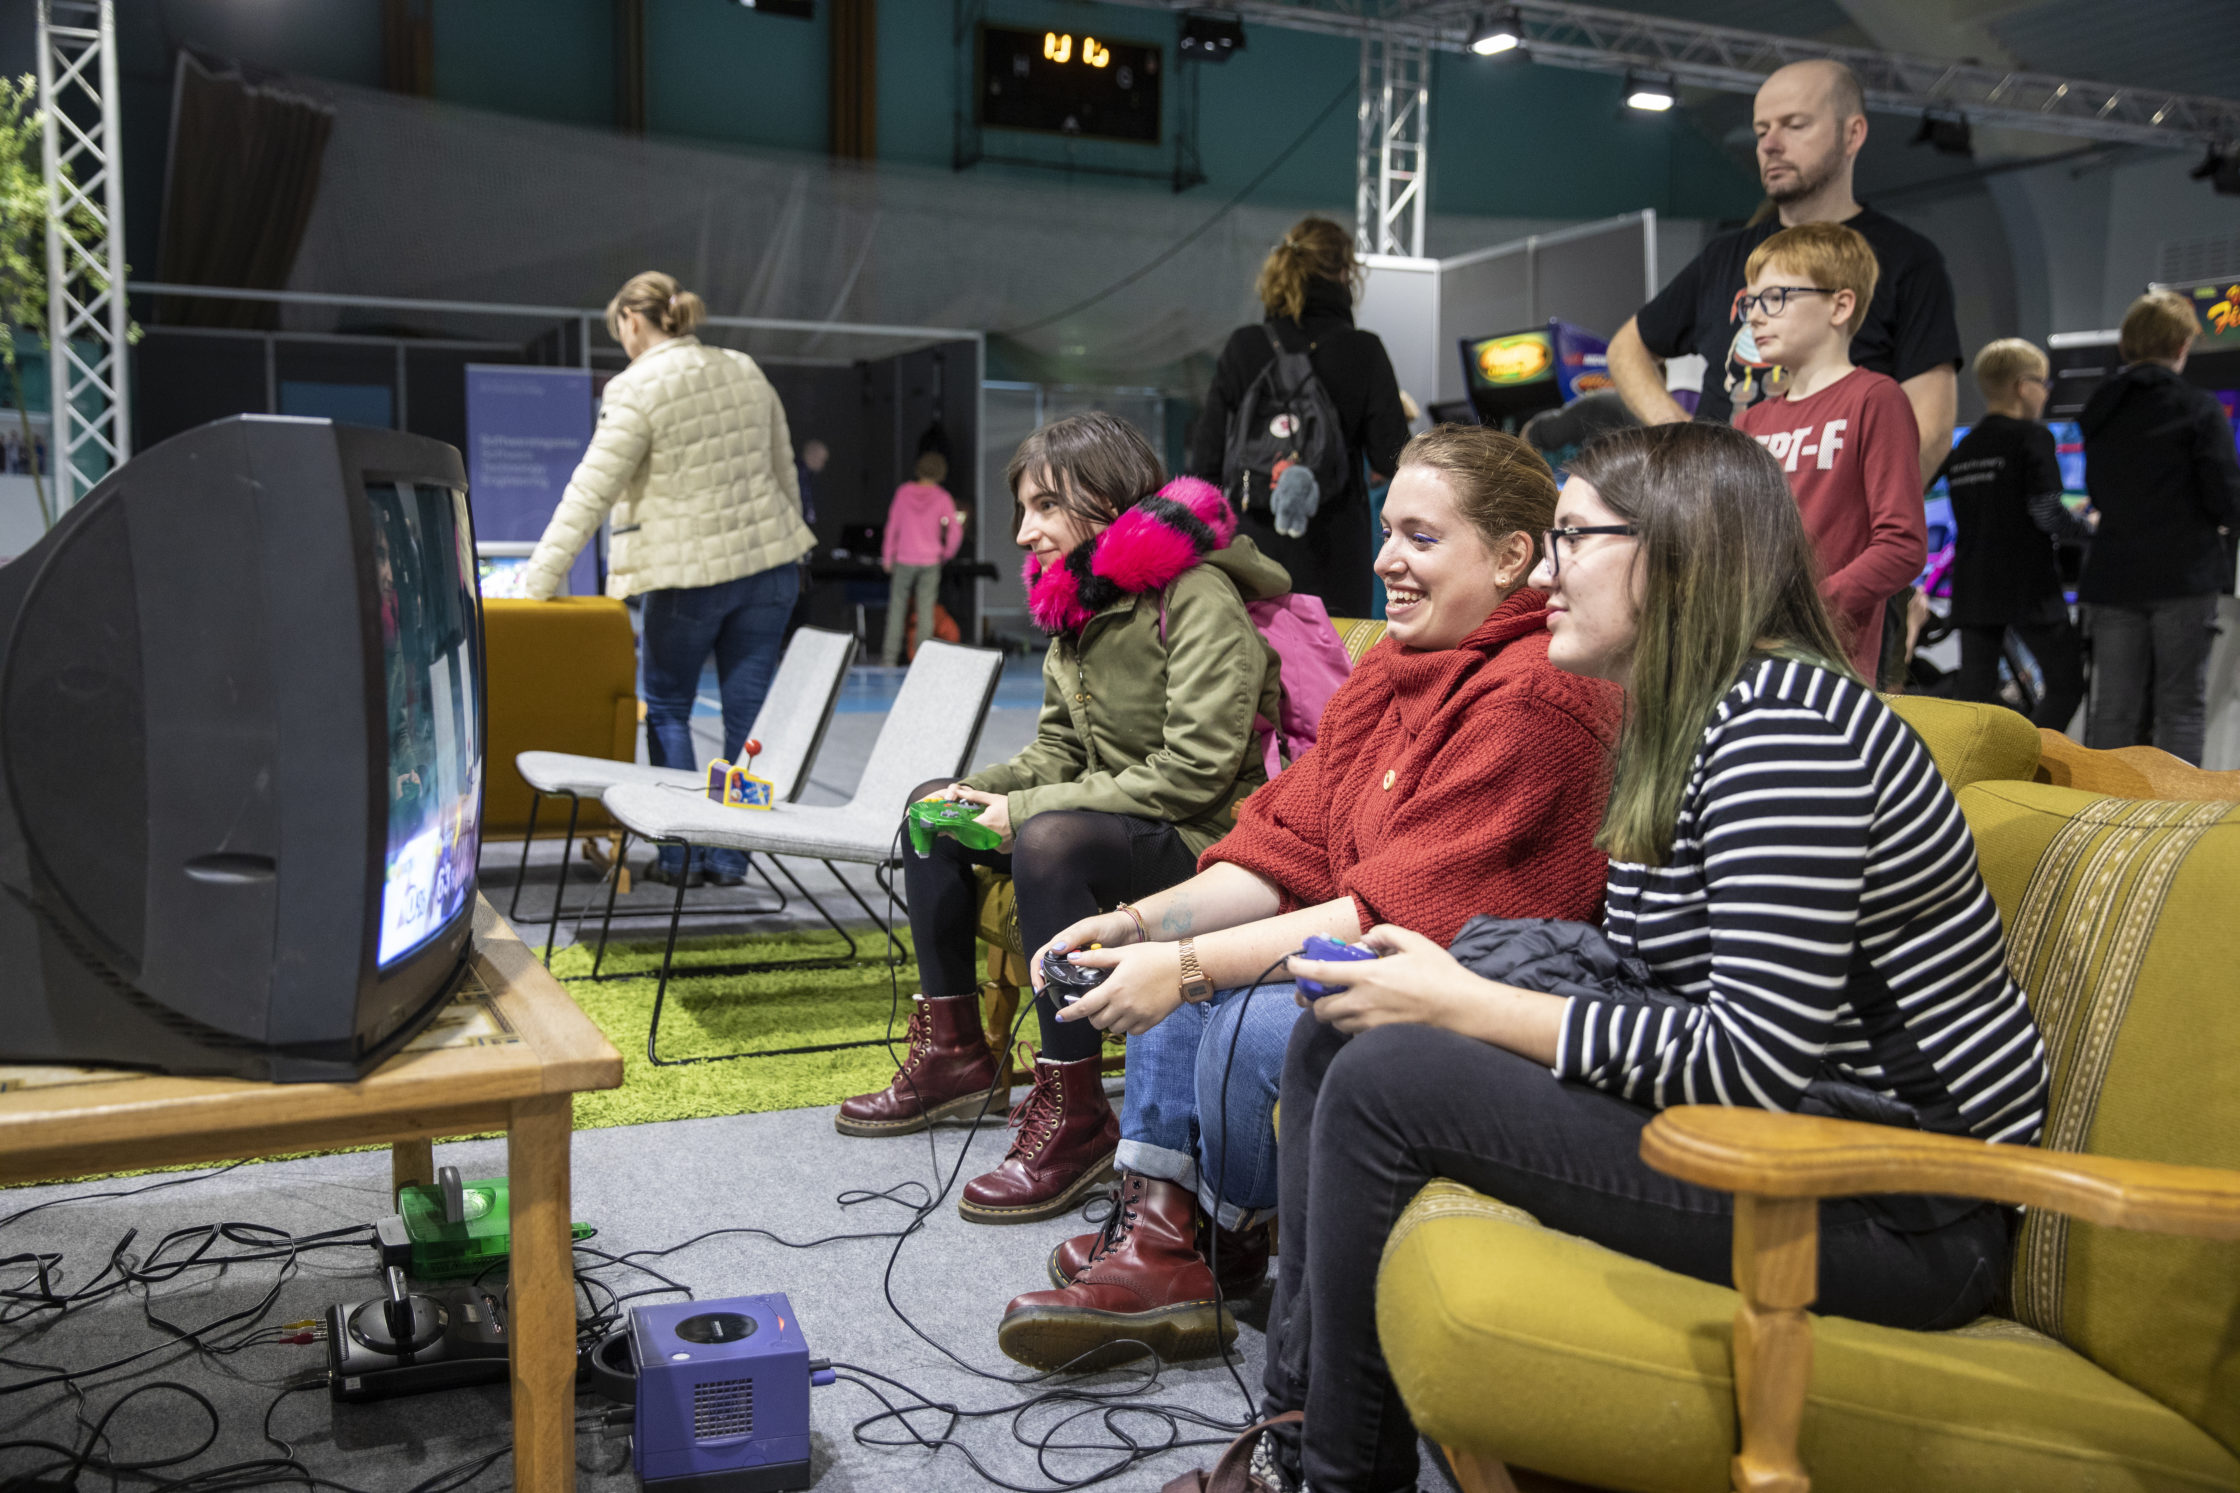 VGE 2019: Playing together in the retro-corner